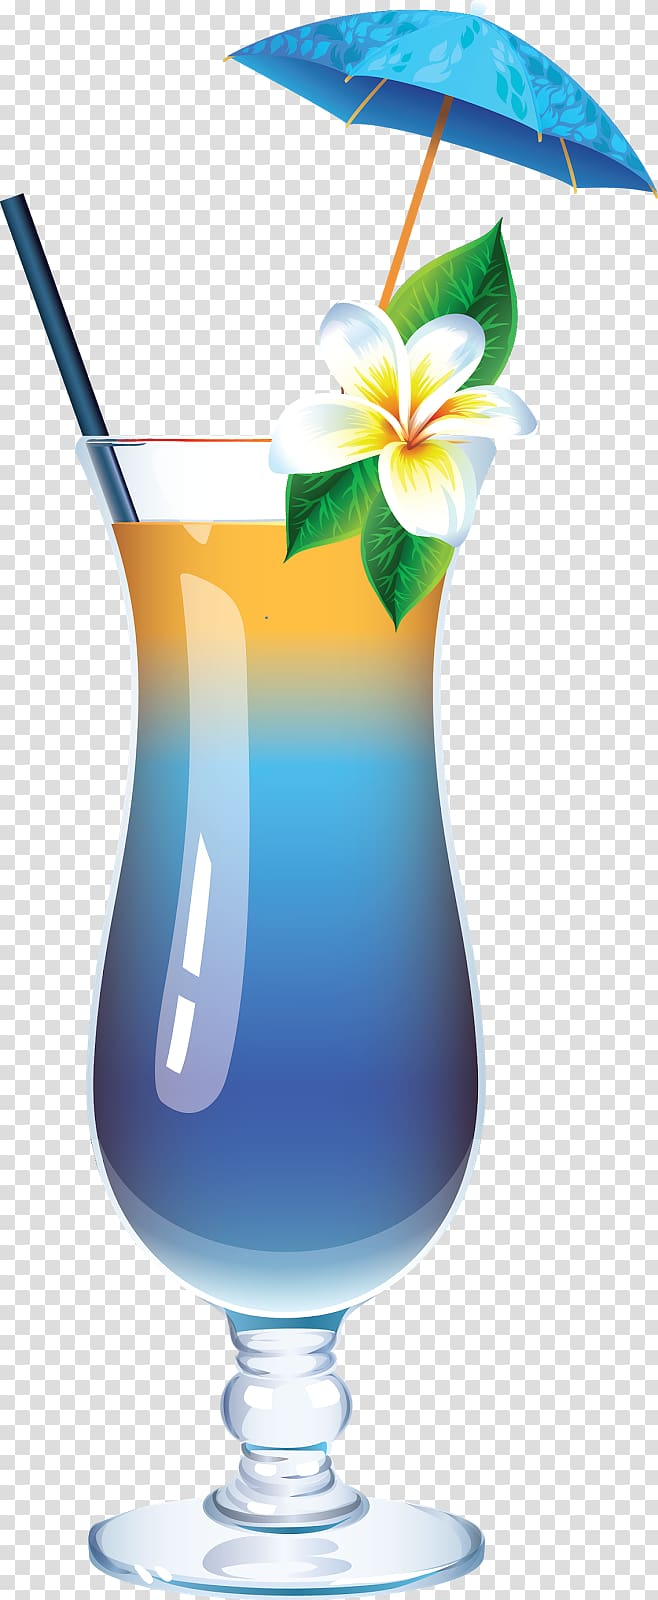 Cocktails clipart hurricane cocktail. Flute filled with blue